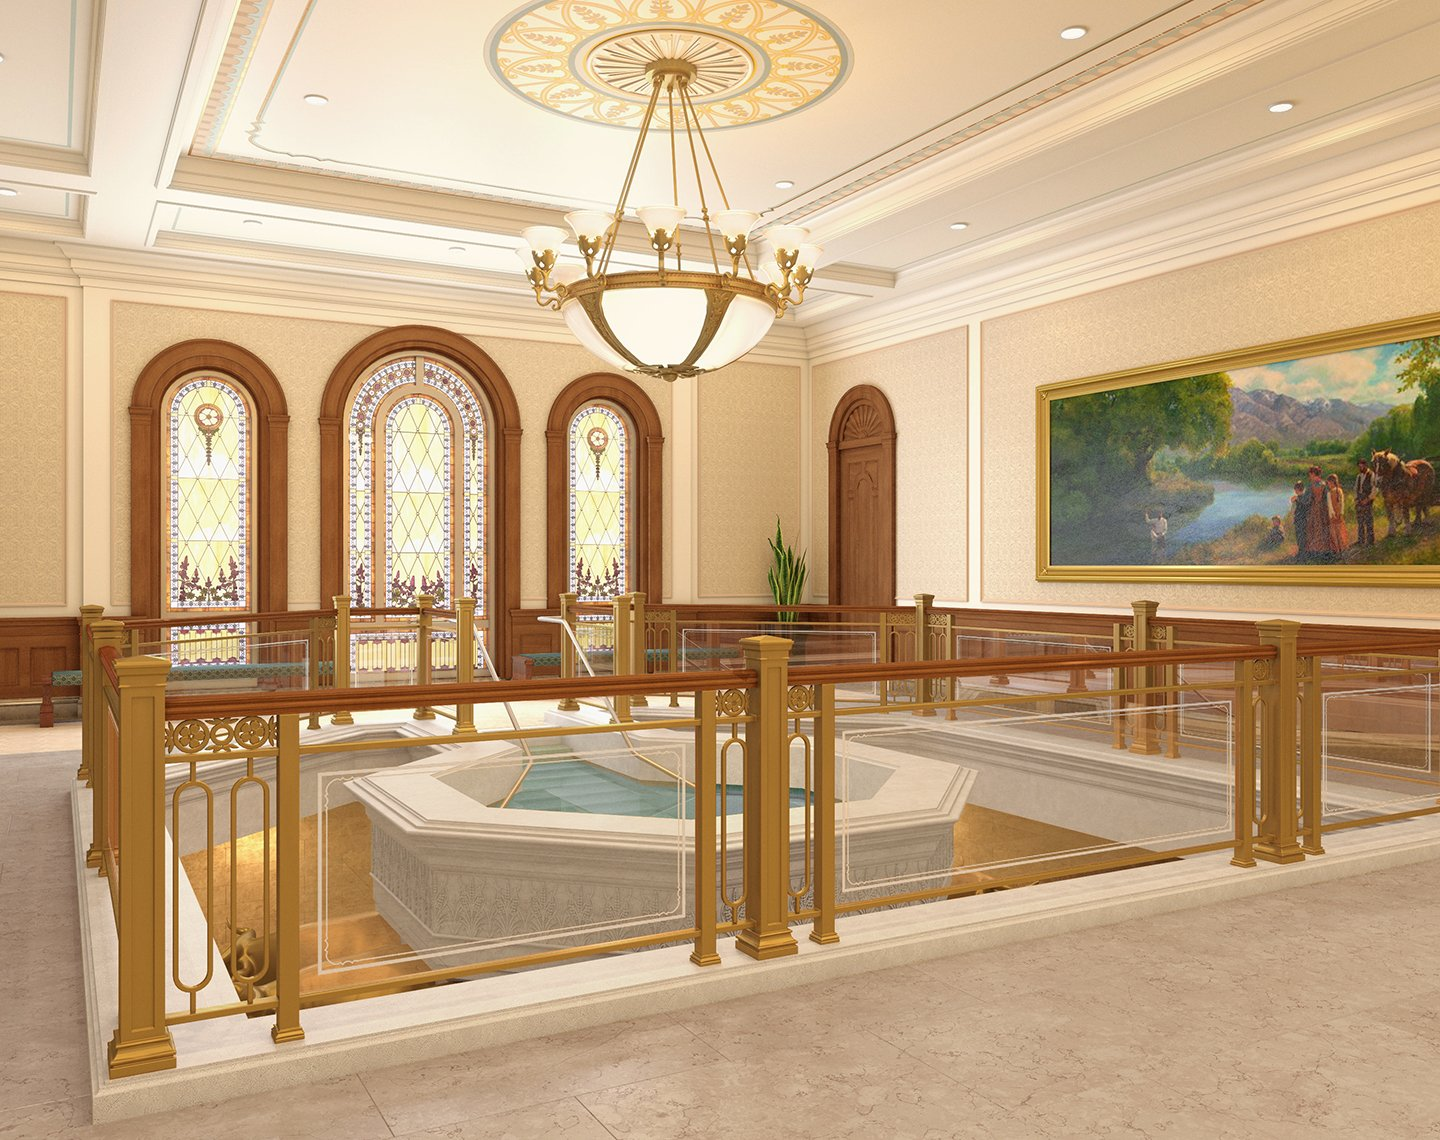 Baptistry of the Tooele Valley Utah Temple | Intellectual Reserve